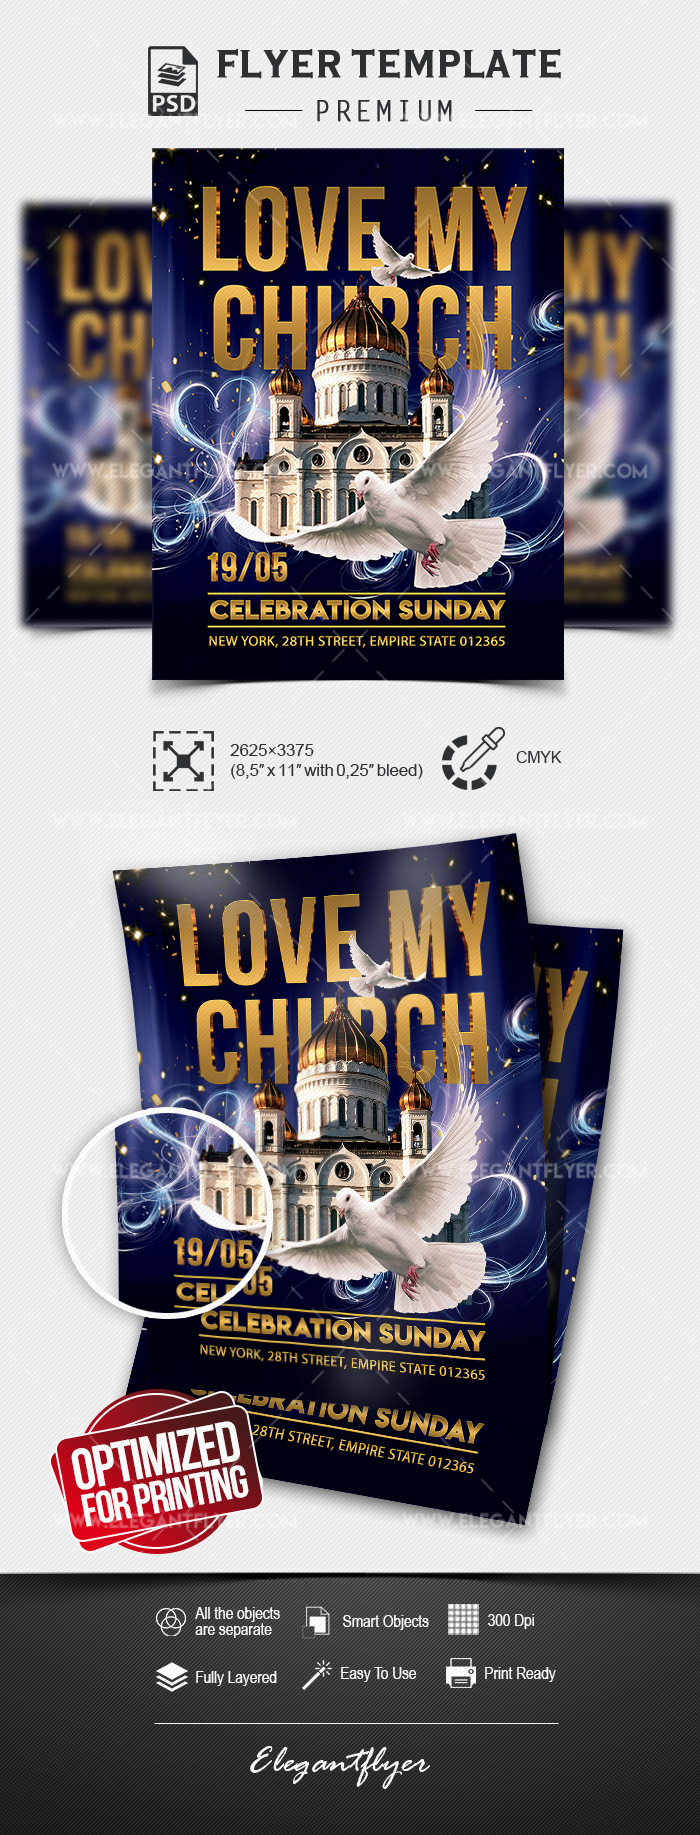 Love my Church – Flyer Template in PSD